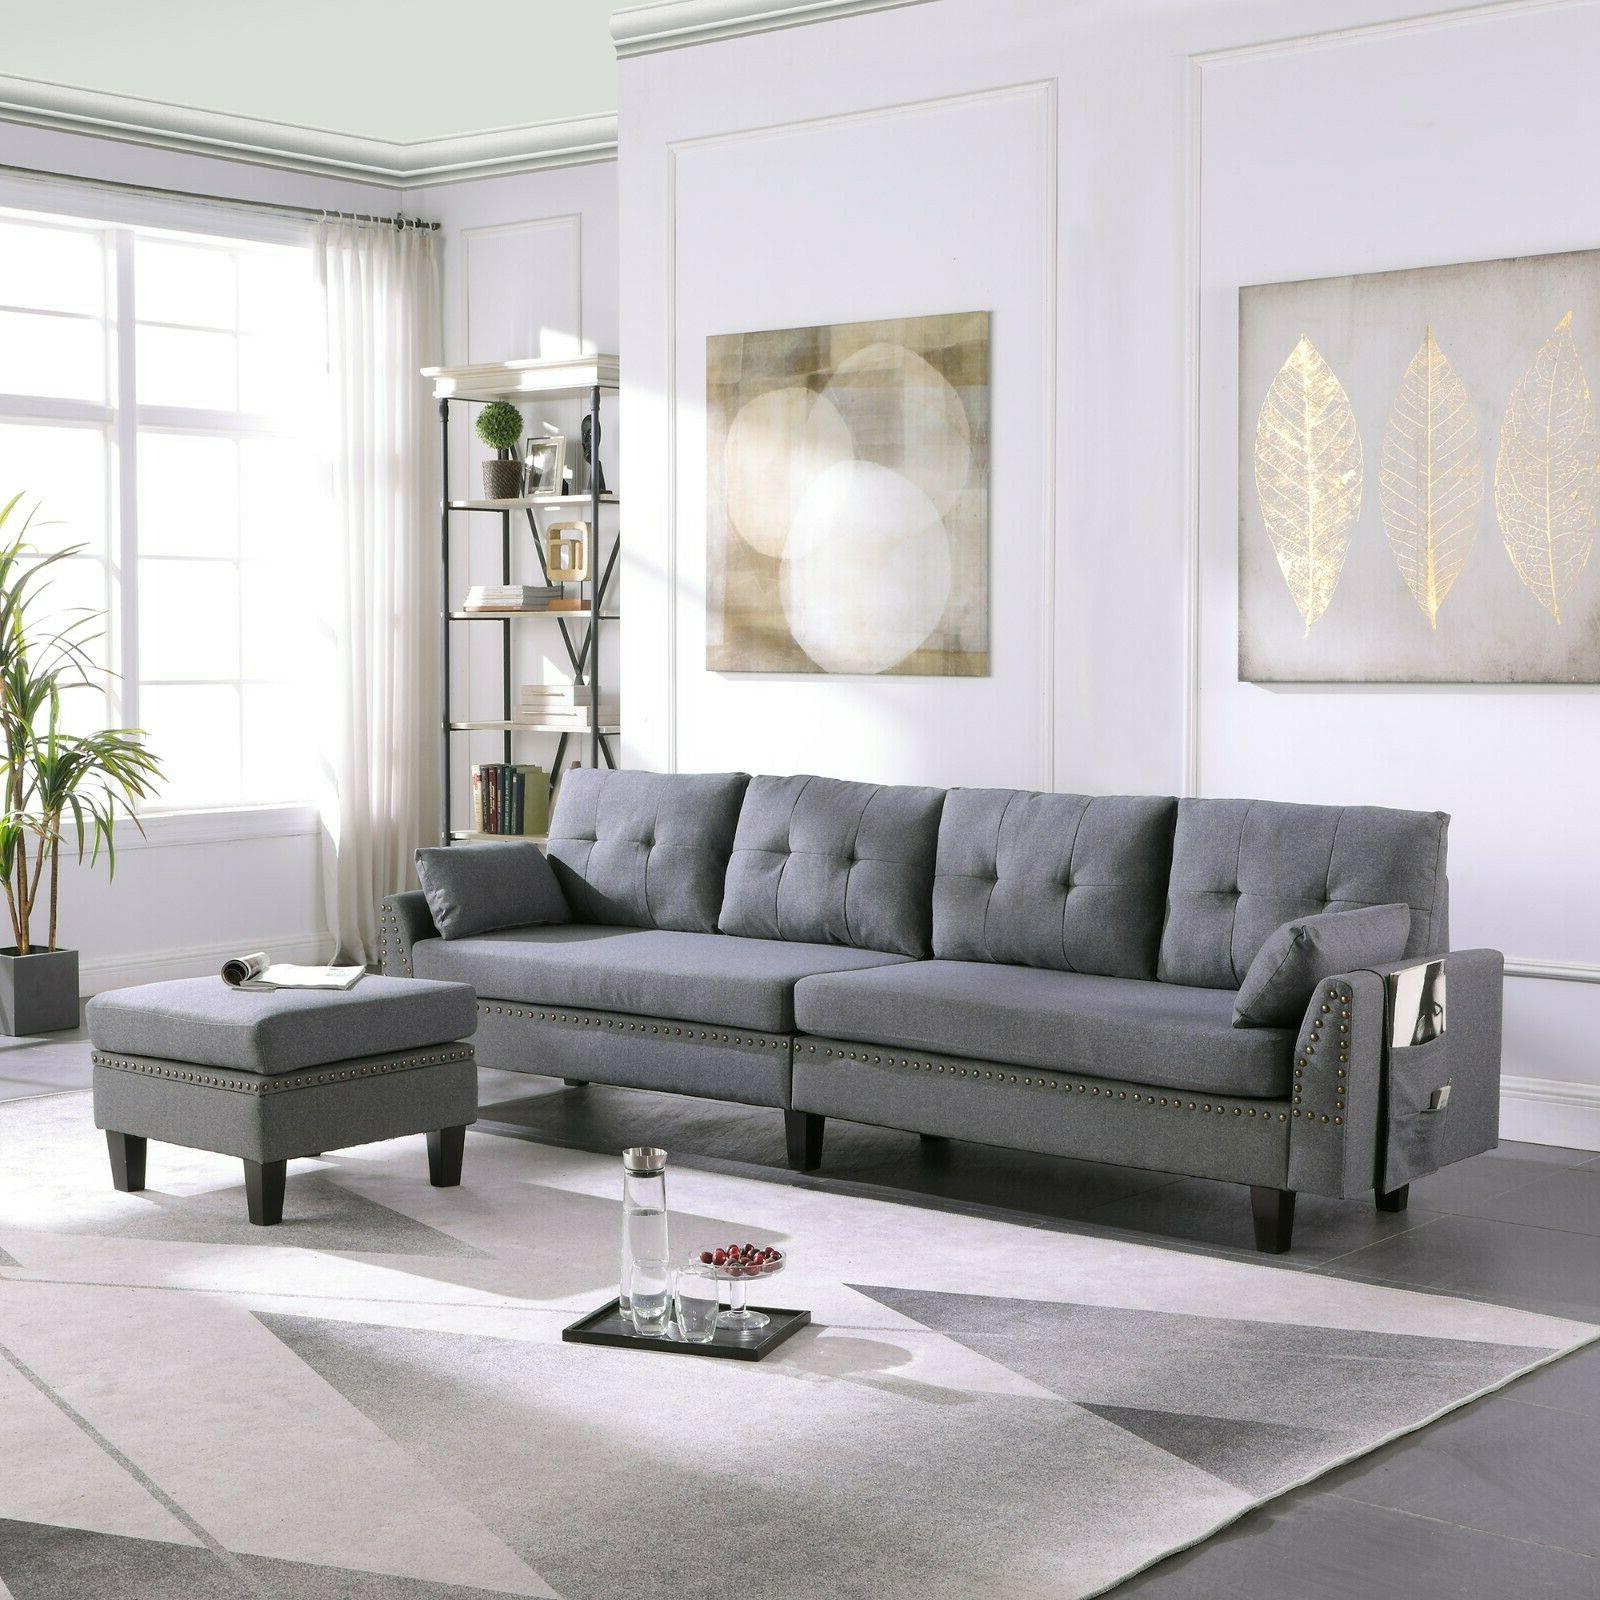 4 seaters sectional sofa couch with storage